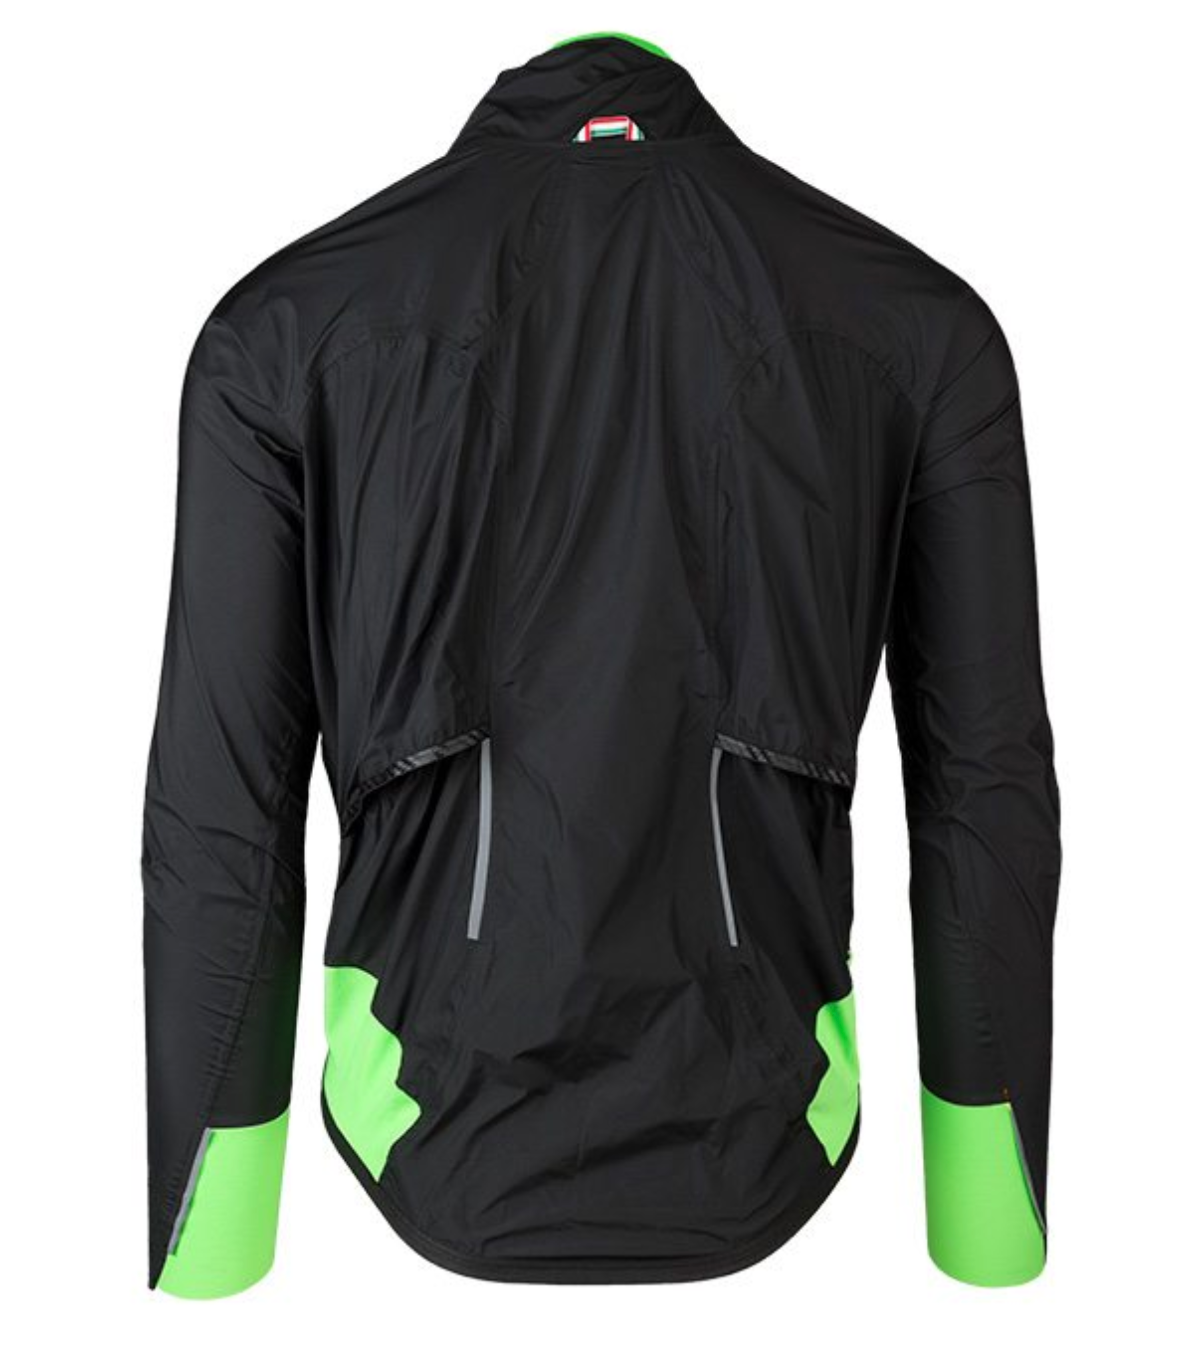 Q36.5 RAIN SHELL PROTECTION JACKET